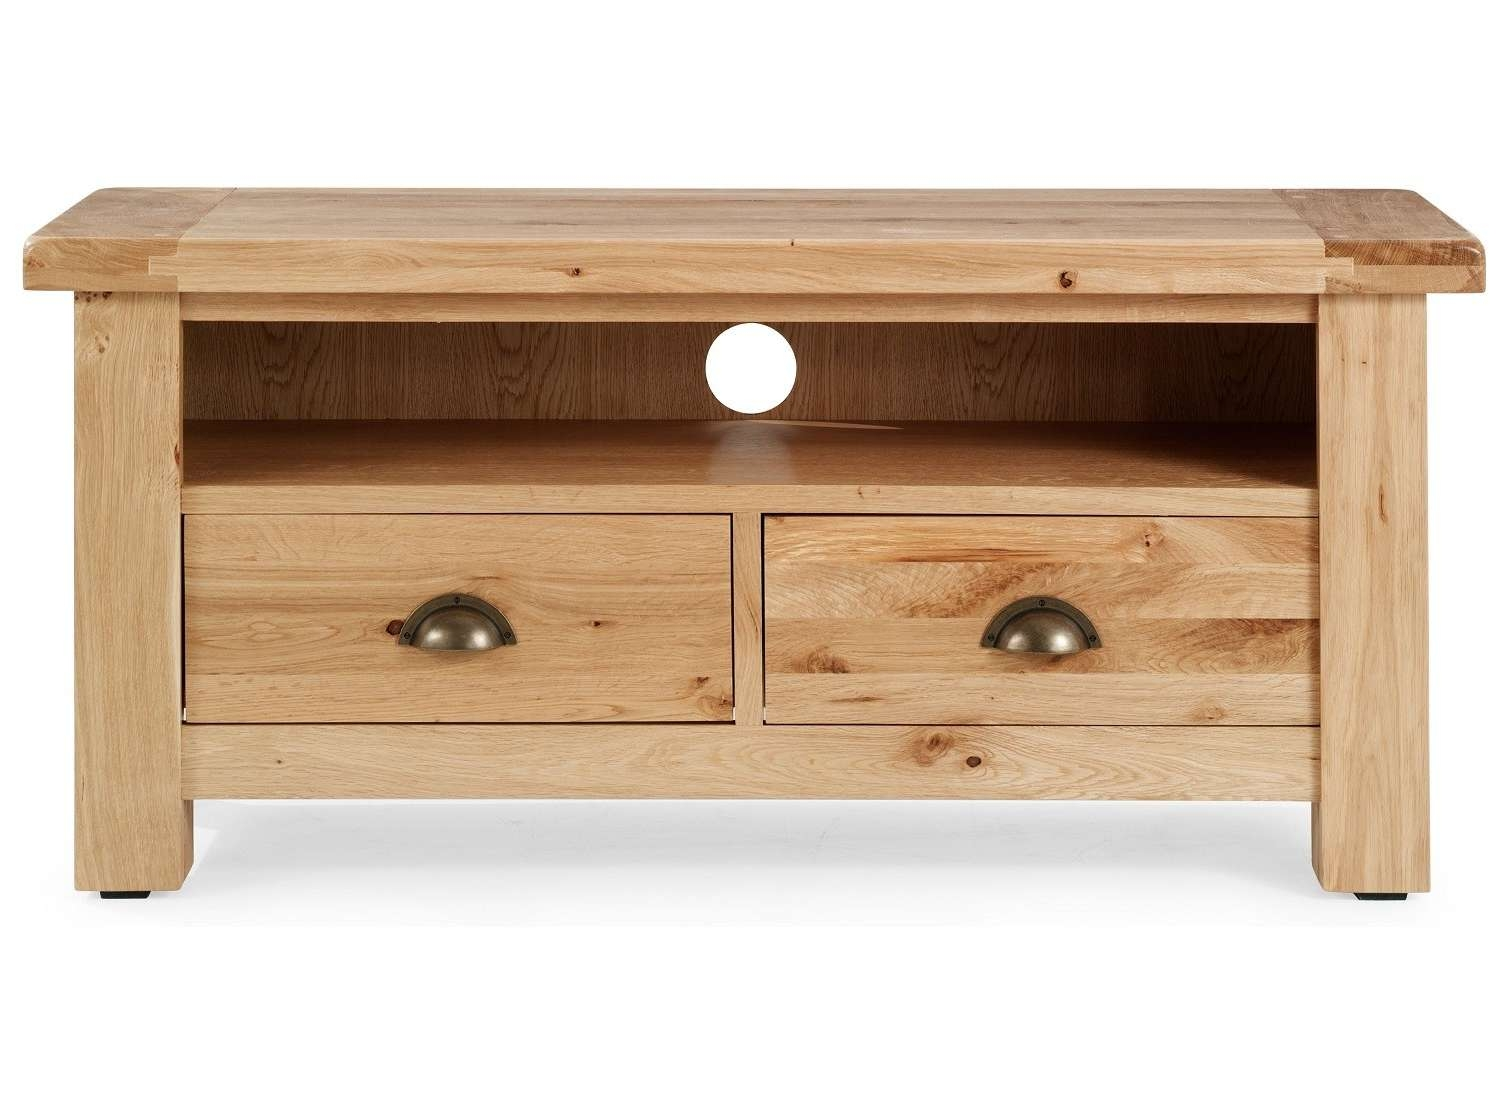 Normandy Rustic French Oak Tv Cabinet | Oak Furniture Uk With Regard To Rustic Corner Tv Cabinets (View 10 of 20)